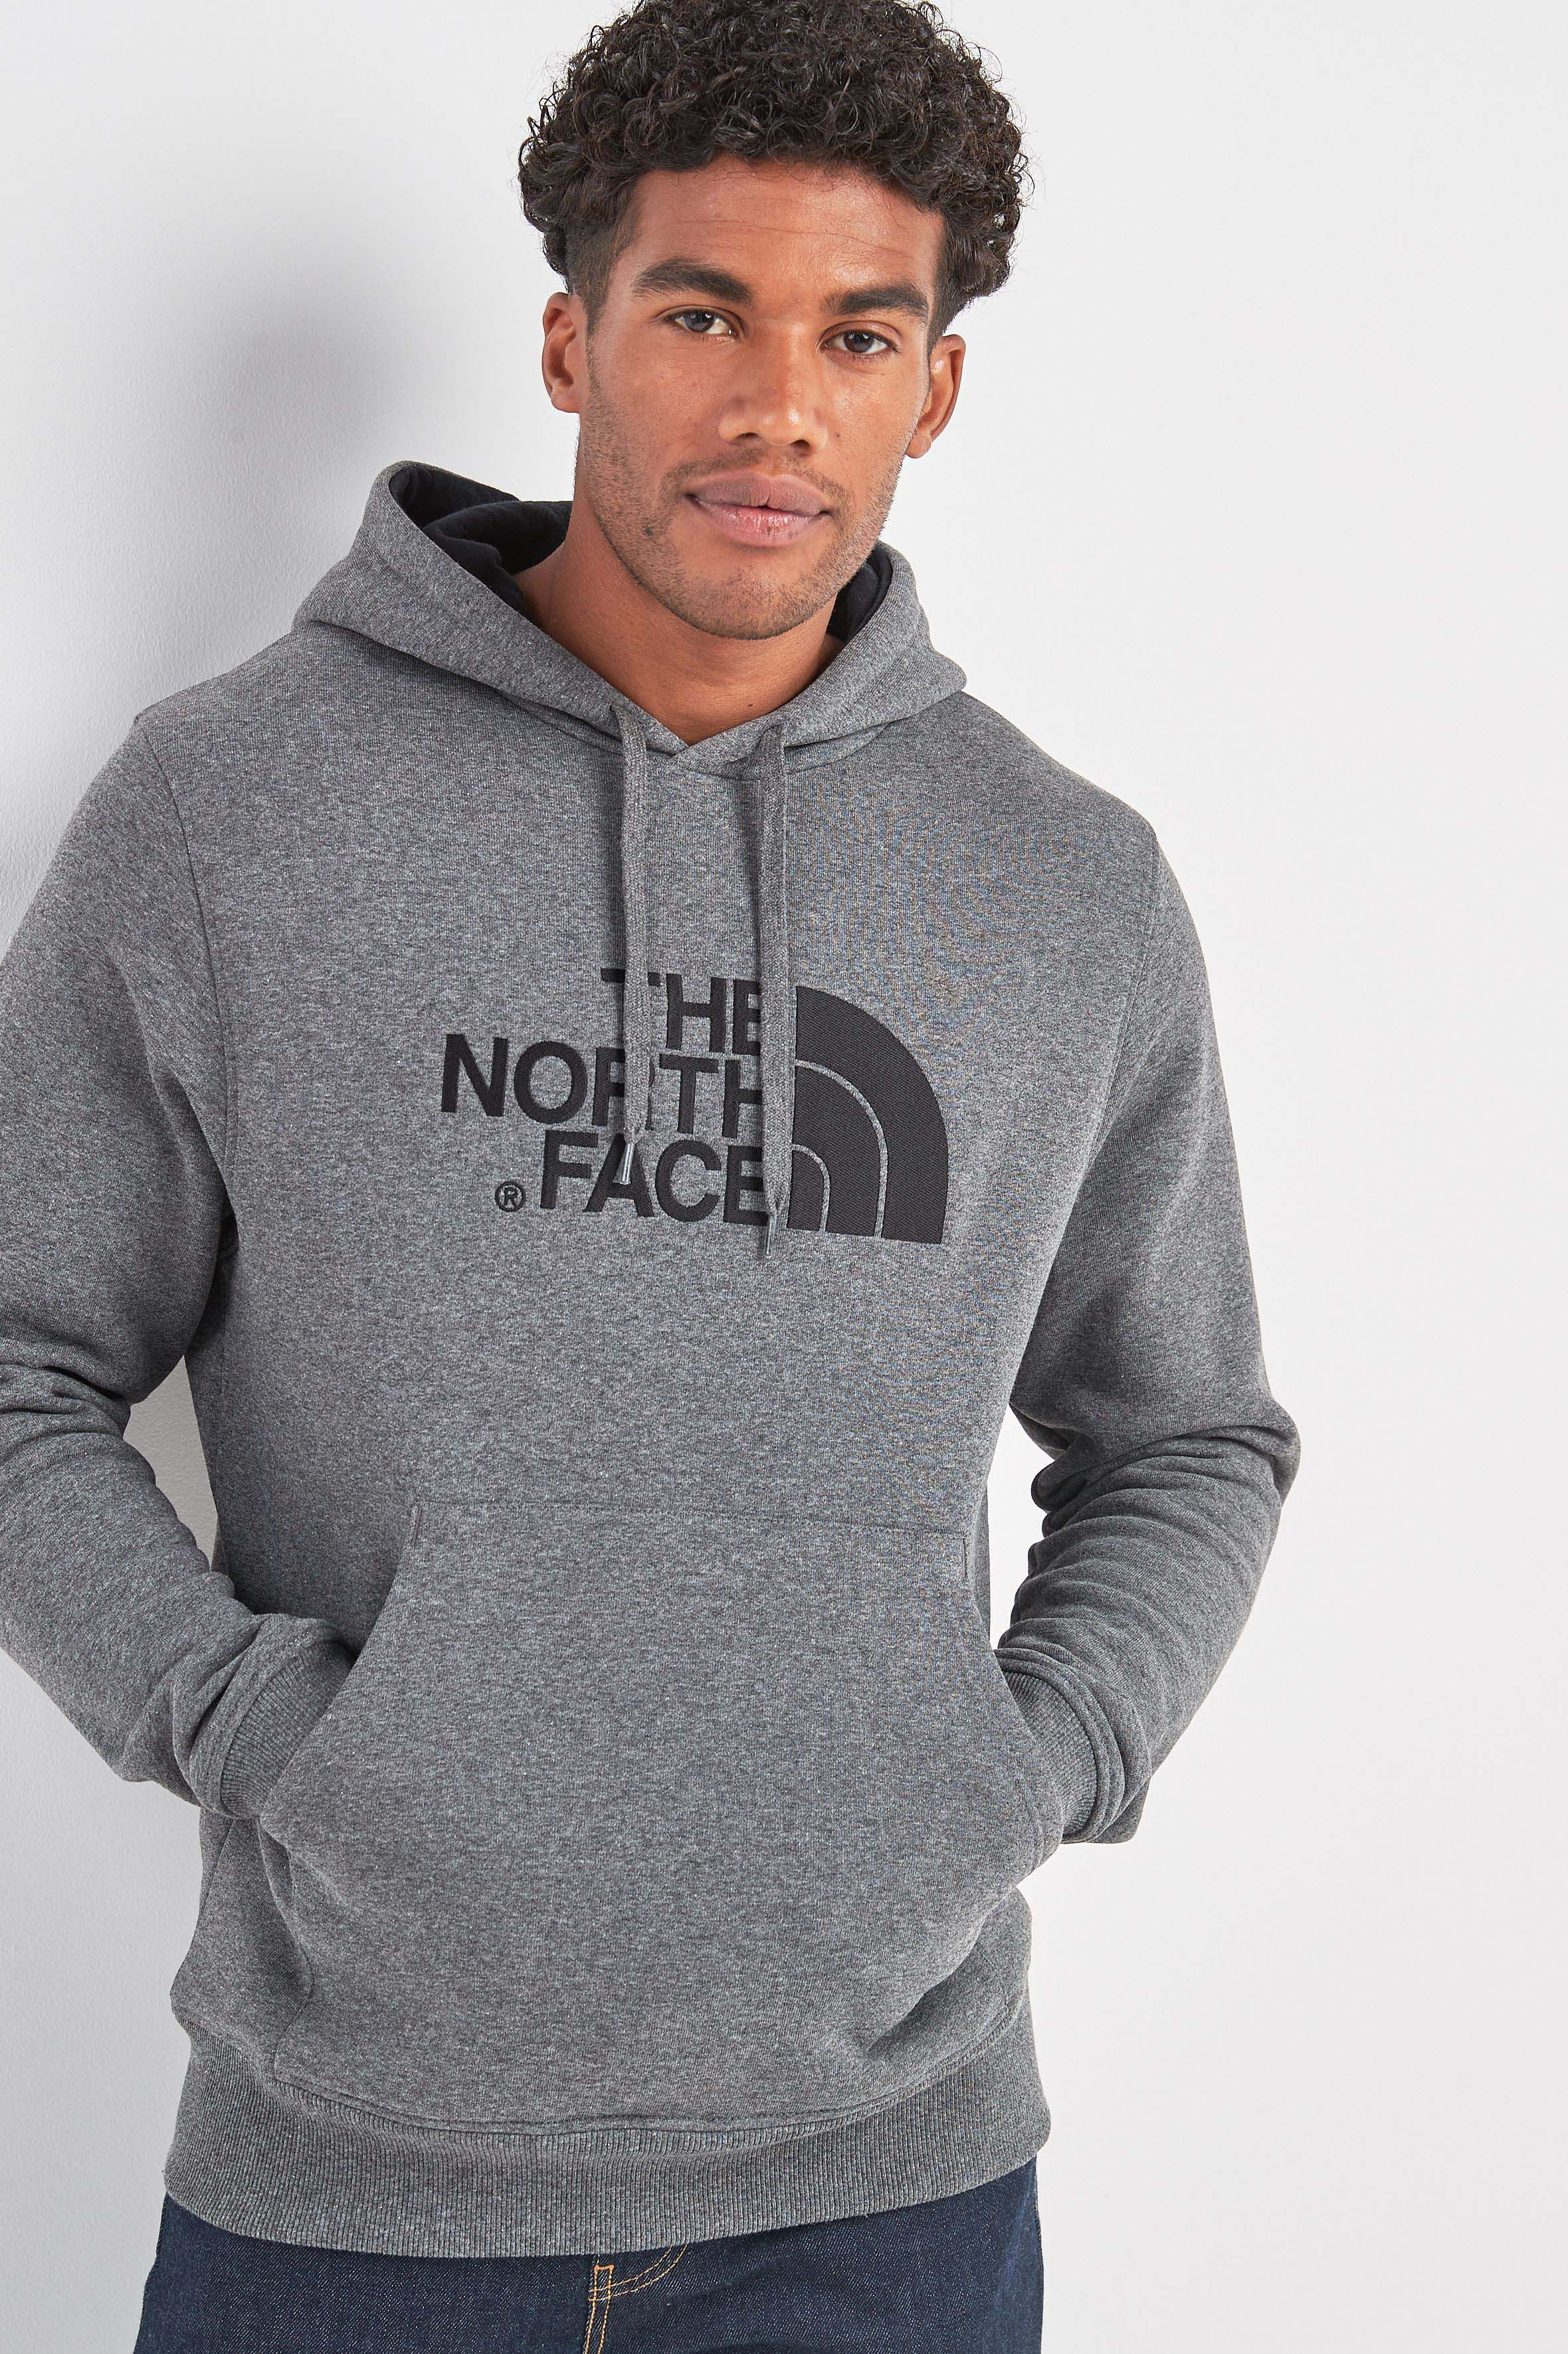 ceeeaf593 Mens The North Face Drew Peak Pullover Hoody - Black | Products ...